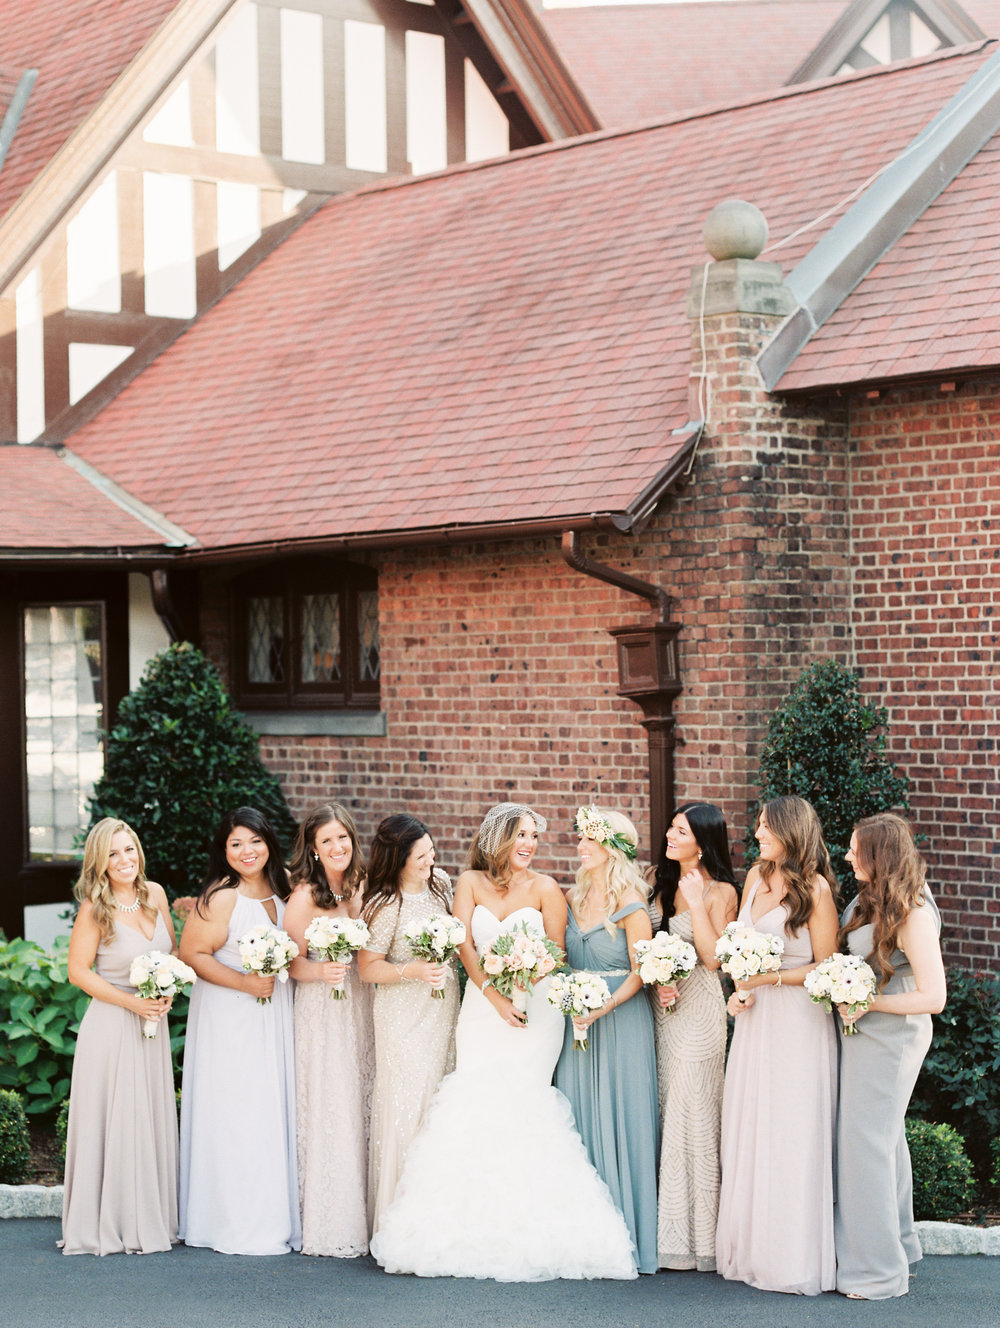 Zuckerman Wedding by Michelle Lange Photography - 388.JPG